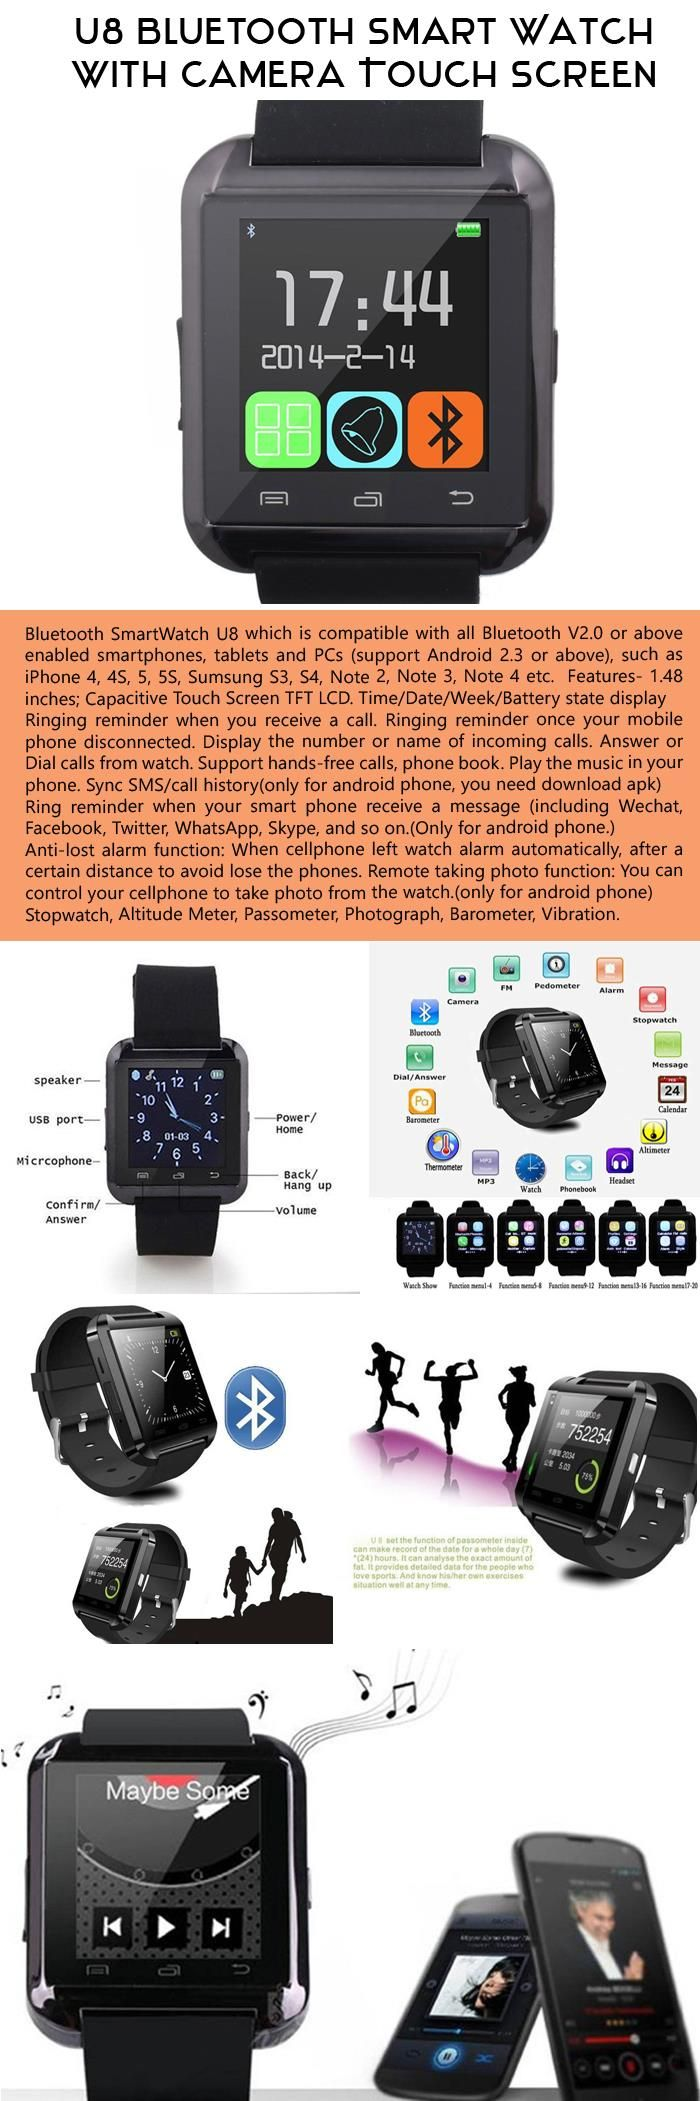 It's a Bluetooth Wristwatch that does so much, it almost eliminates the need for a spouse. Almost.